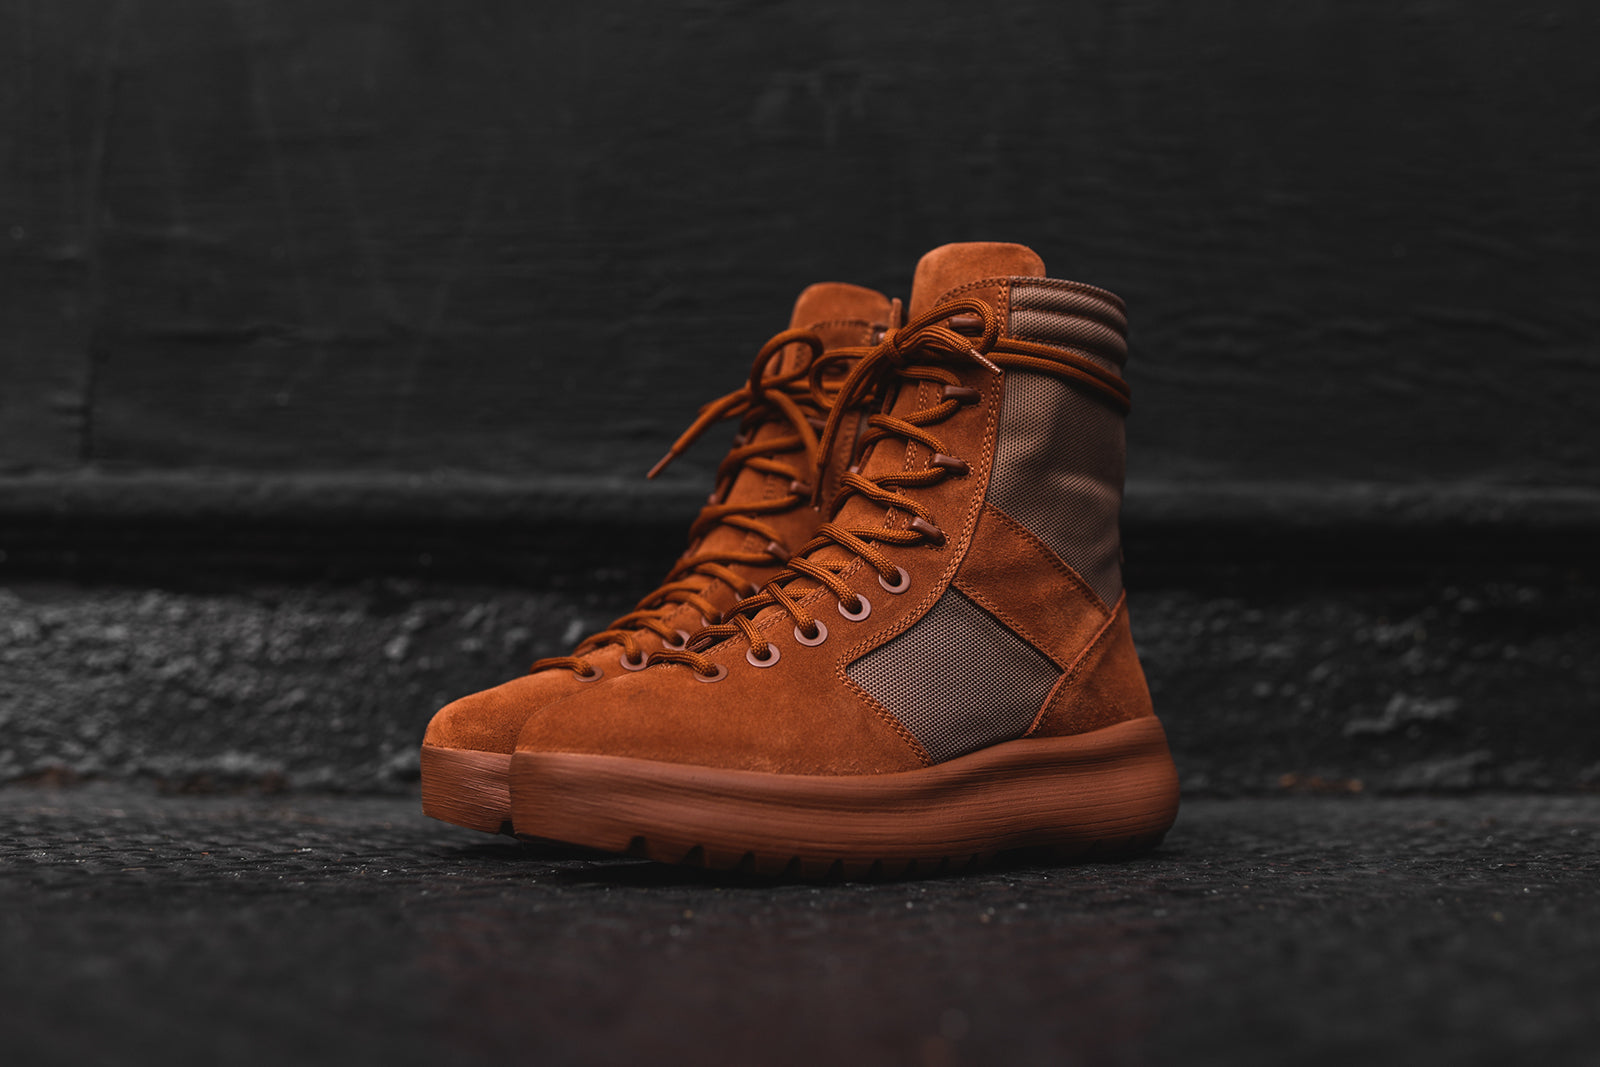 277ffd0016e8cd Yeezy Military Boot Pack – Kith